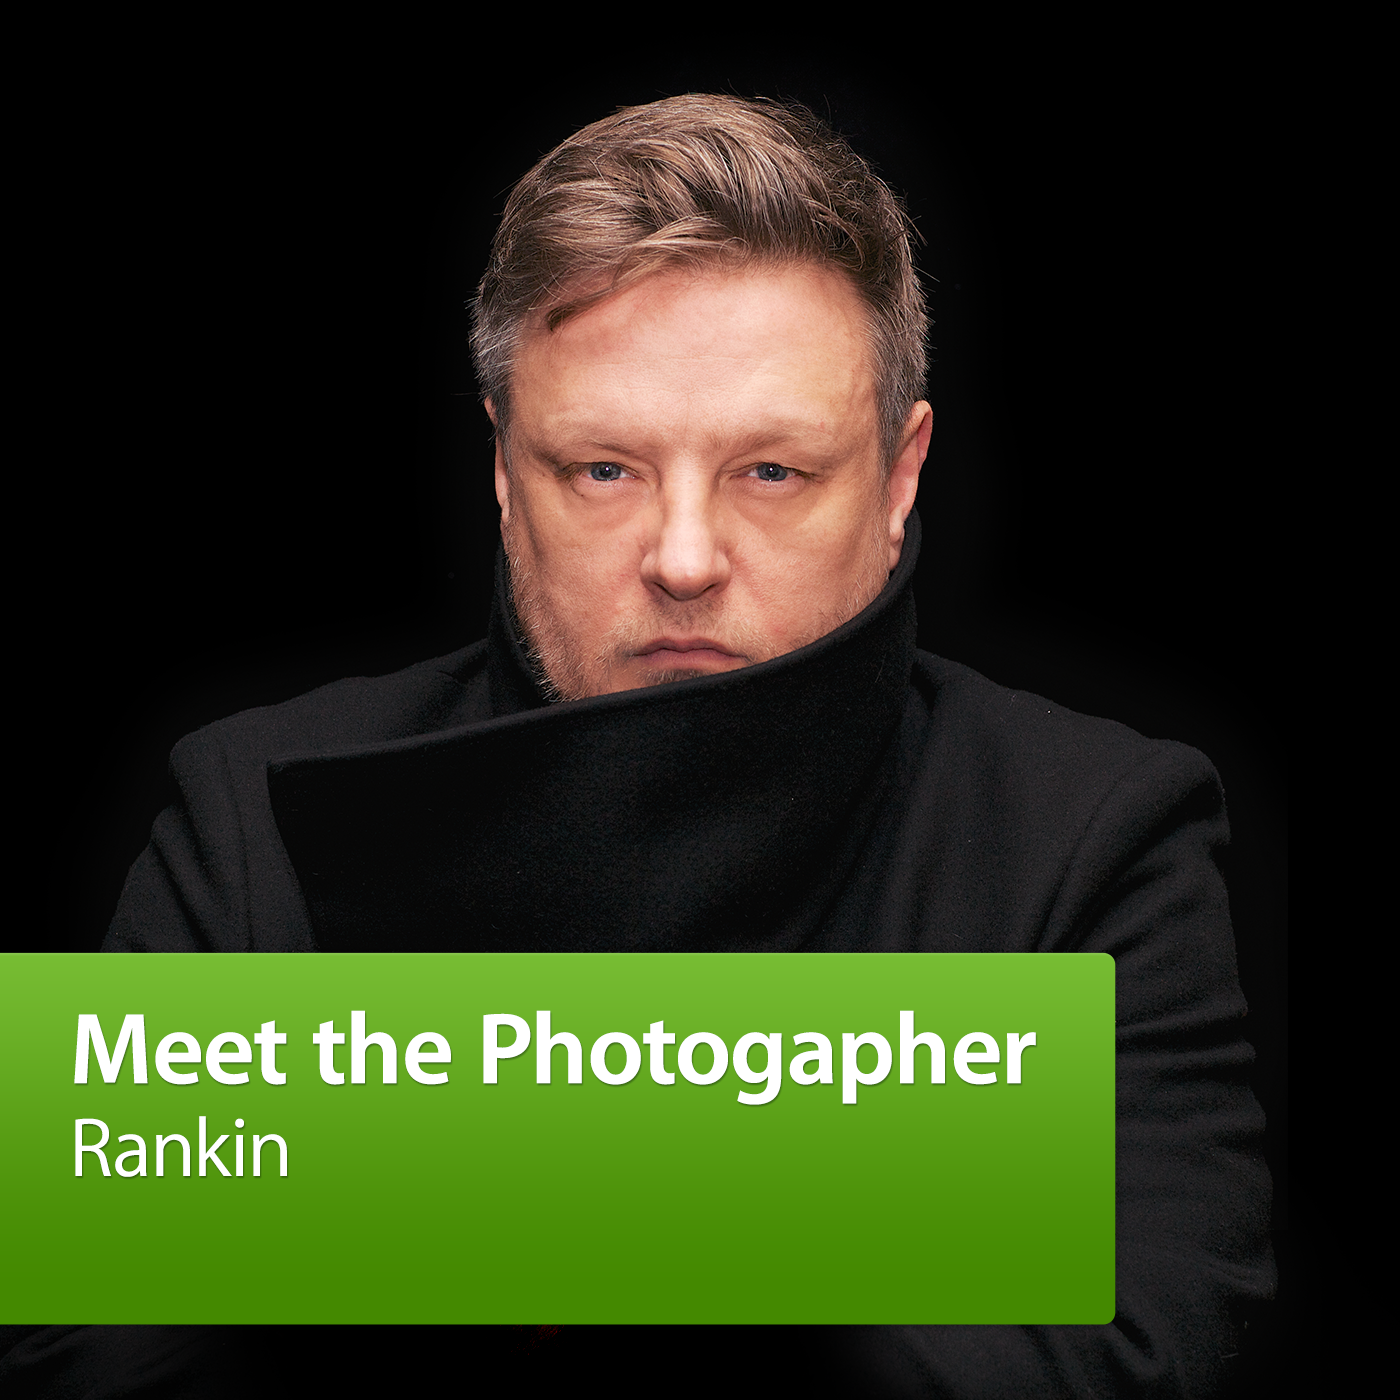 Rankin: Meet the Photographer